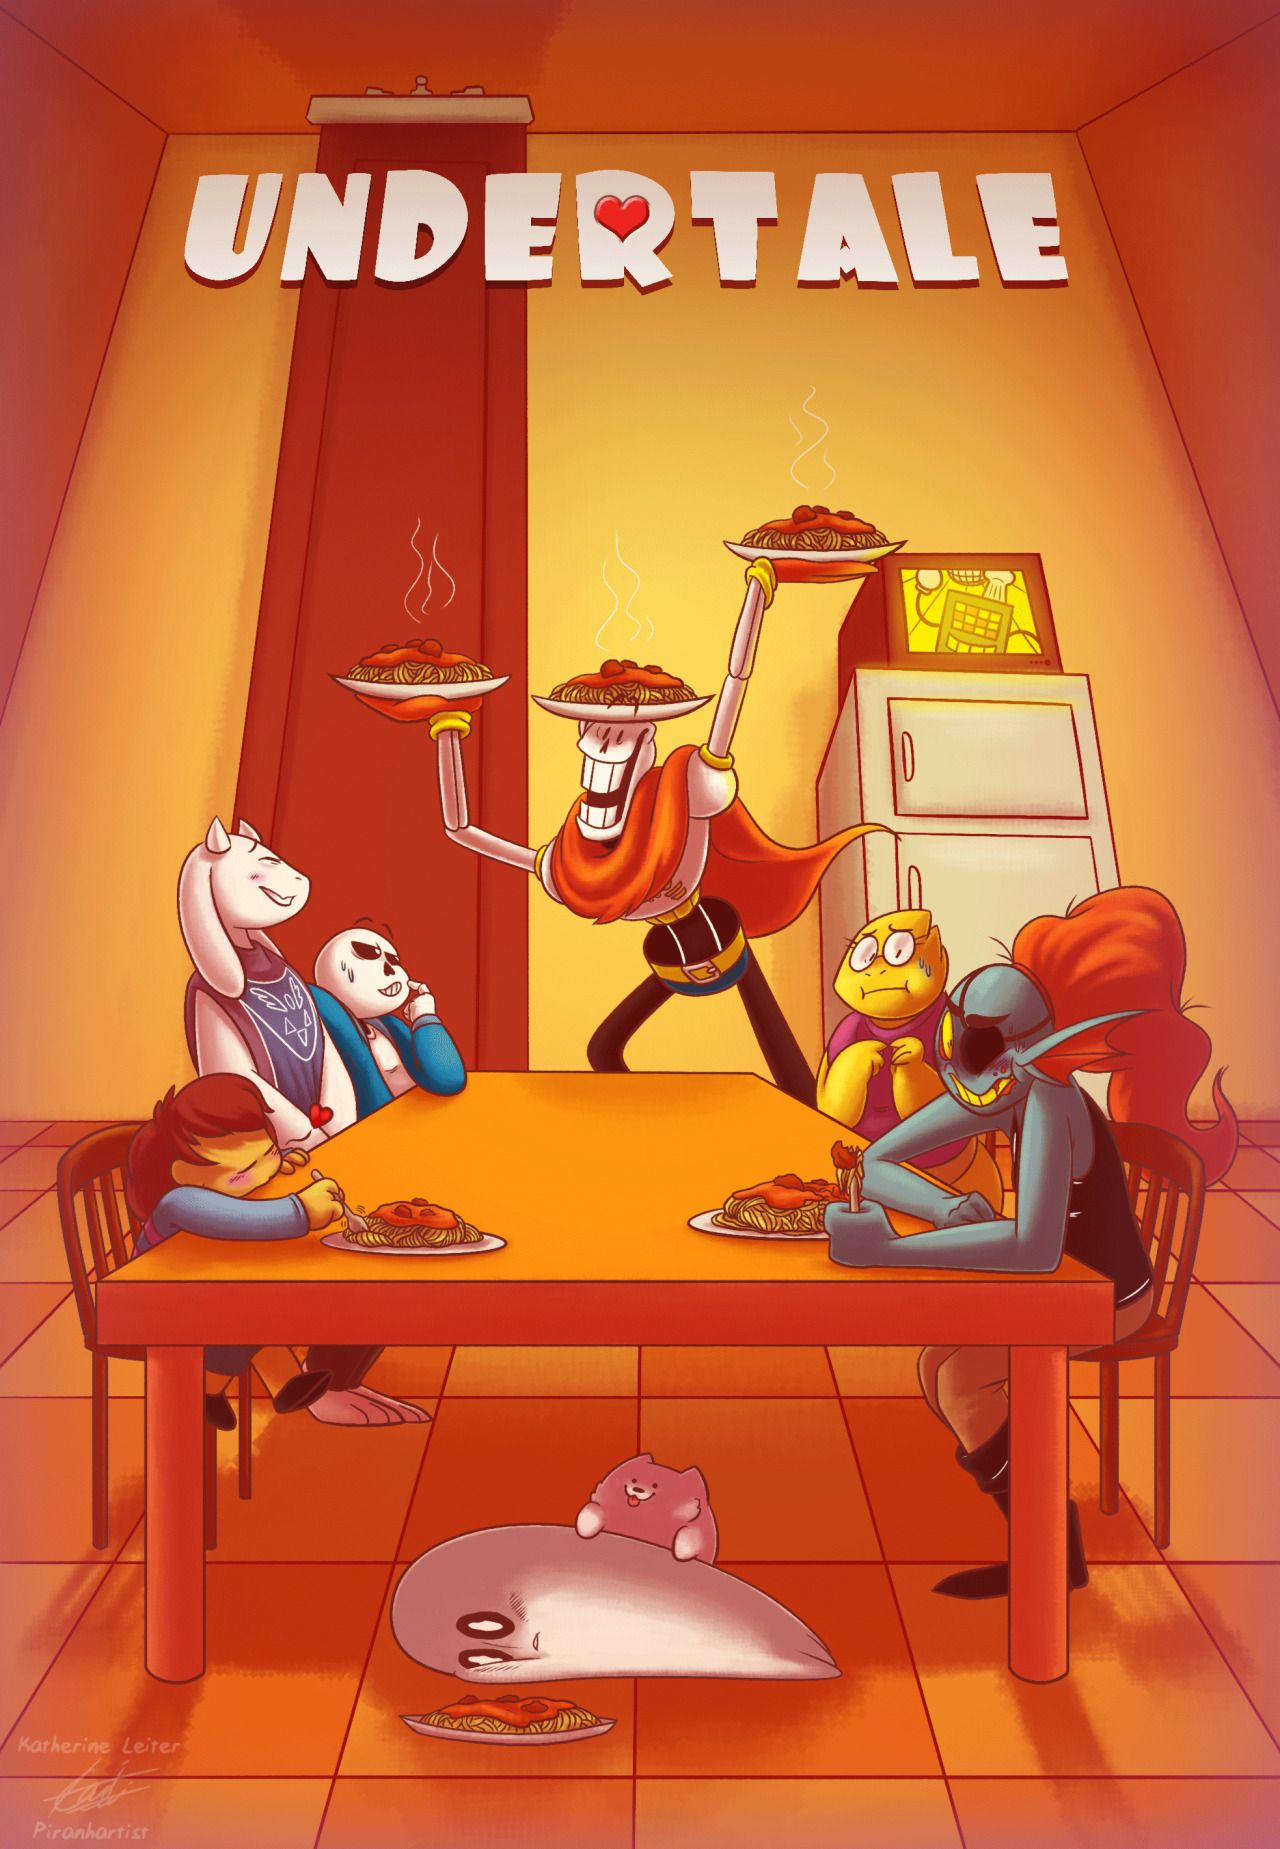 piranharting:    Your amazingly cool friend Papyrus made you and your dearest companions a passionately prepared spaghetti dinnerit fills you with determination.sans' arm is just over the back of his chair btw but you can interpret the composition as ya please : P